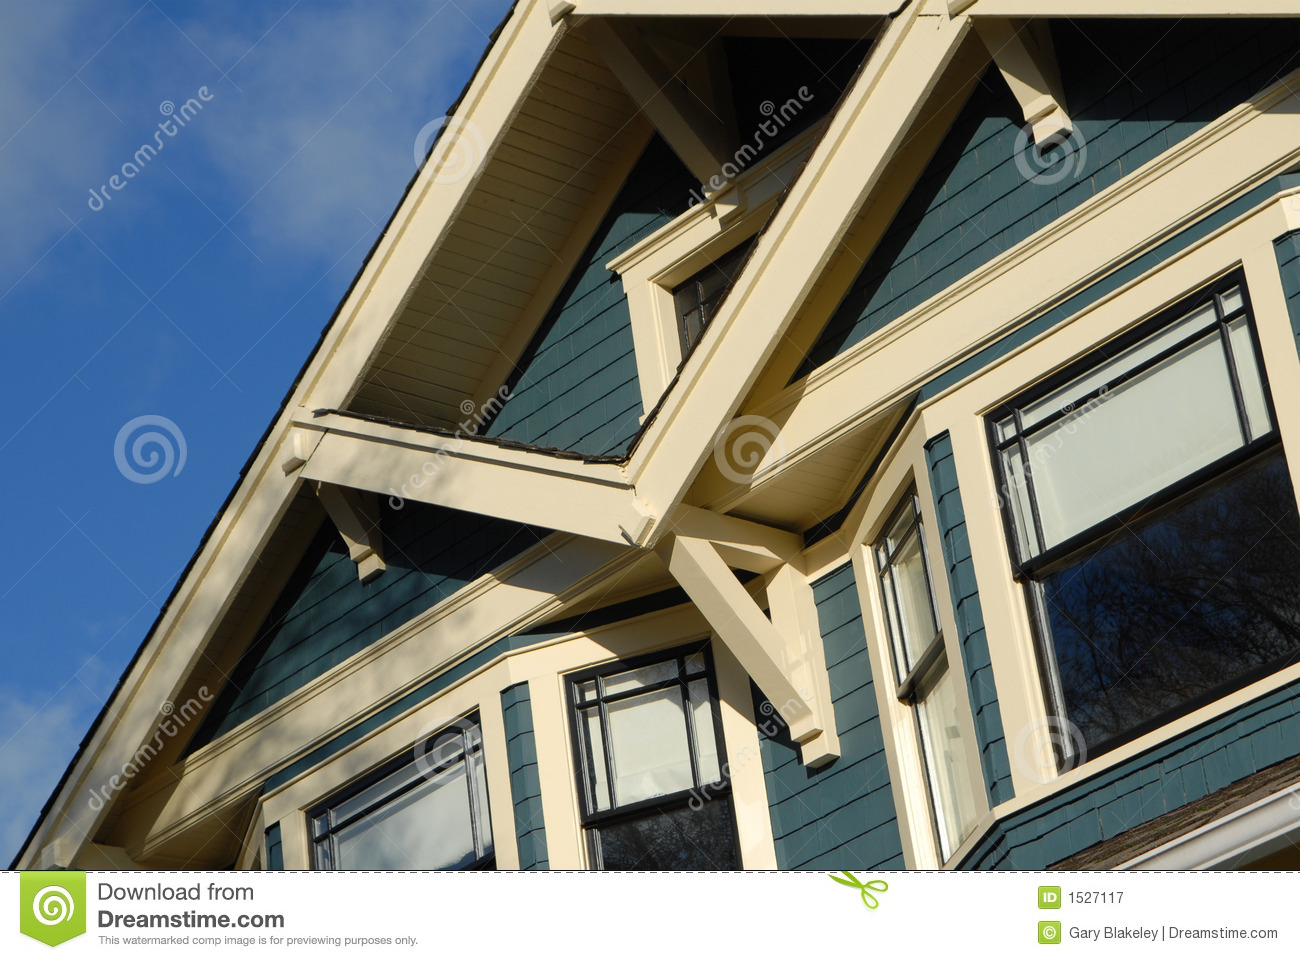 Covered front porch craftsman style home royalty free stock image - Royalty Free Stock Photo Autumn Craftsman House Style Construction Neighbourhood Window Porch